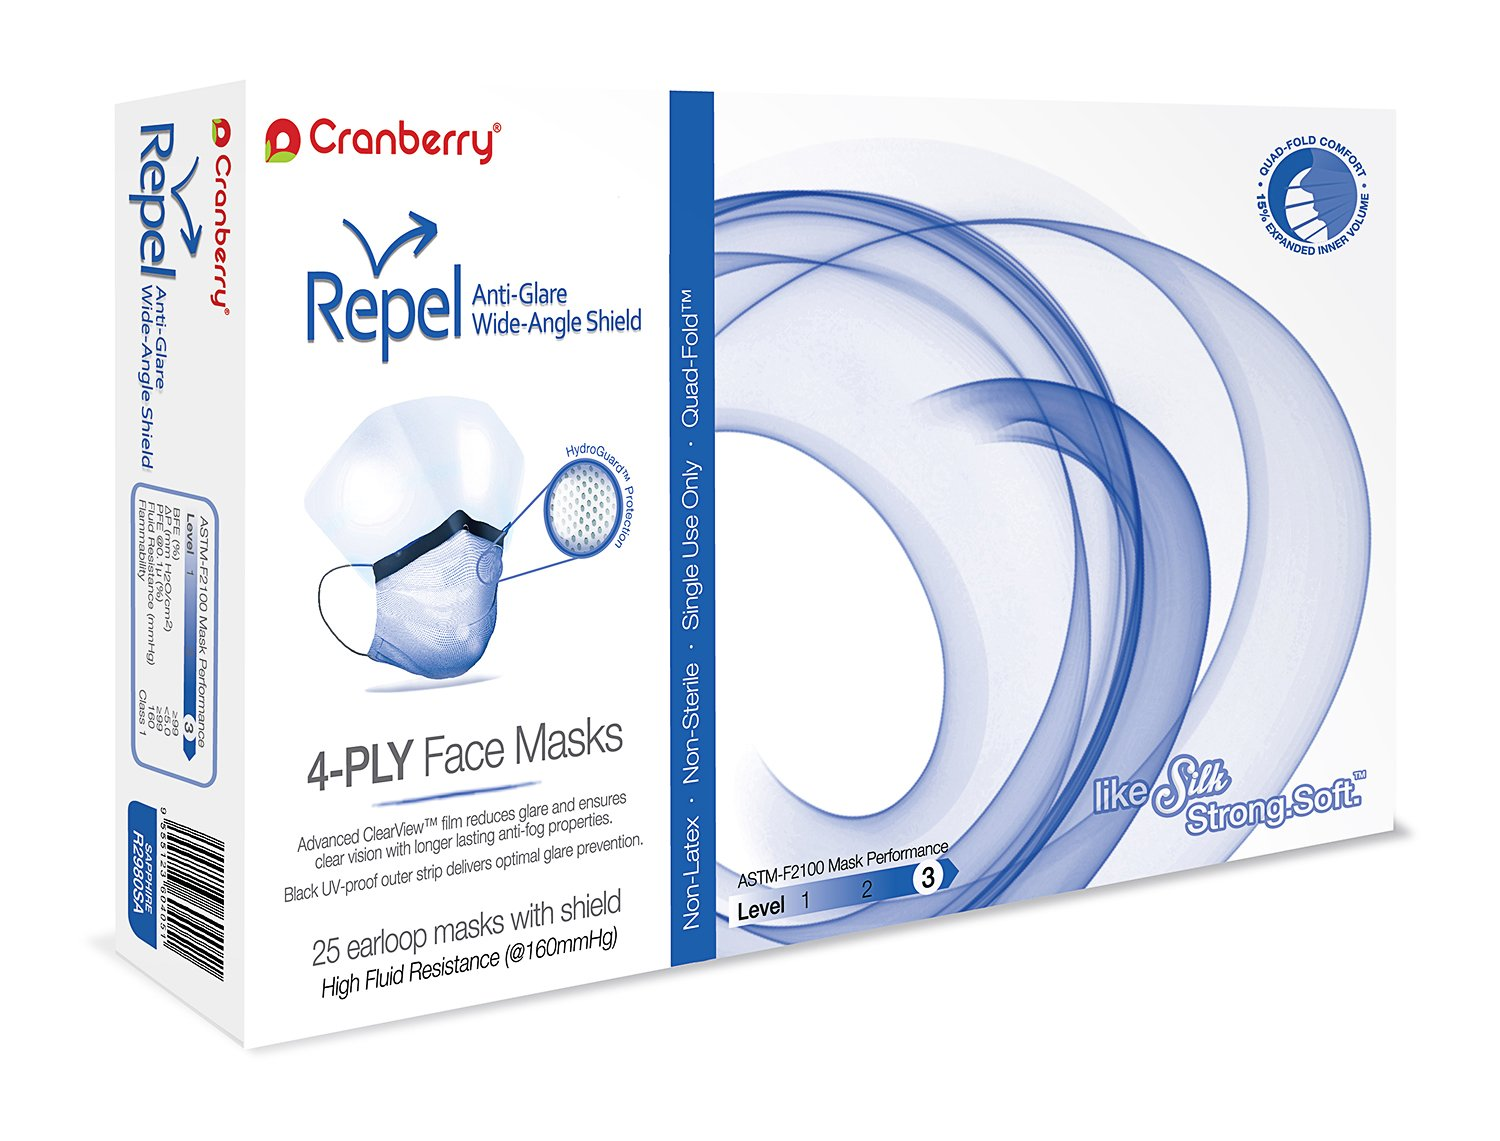 Cranberry USA R2980SAcase Repel 4-Ply Ear Loop Face Mask, Anti-Glare Wide-Angle Shield, ASTM Level 3, Sapphire (Pack of 100)